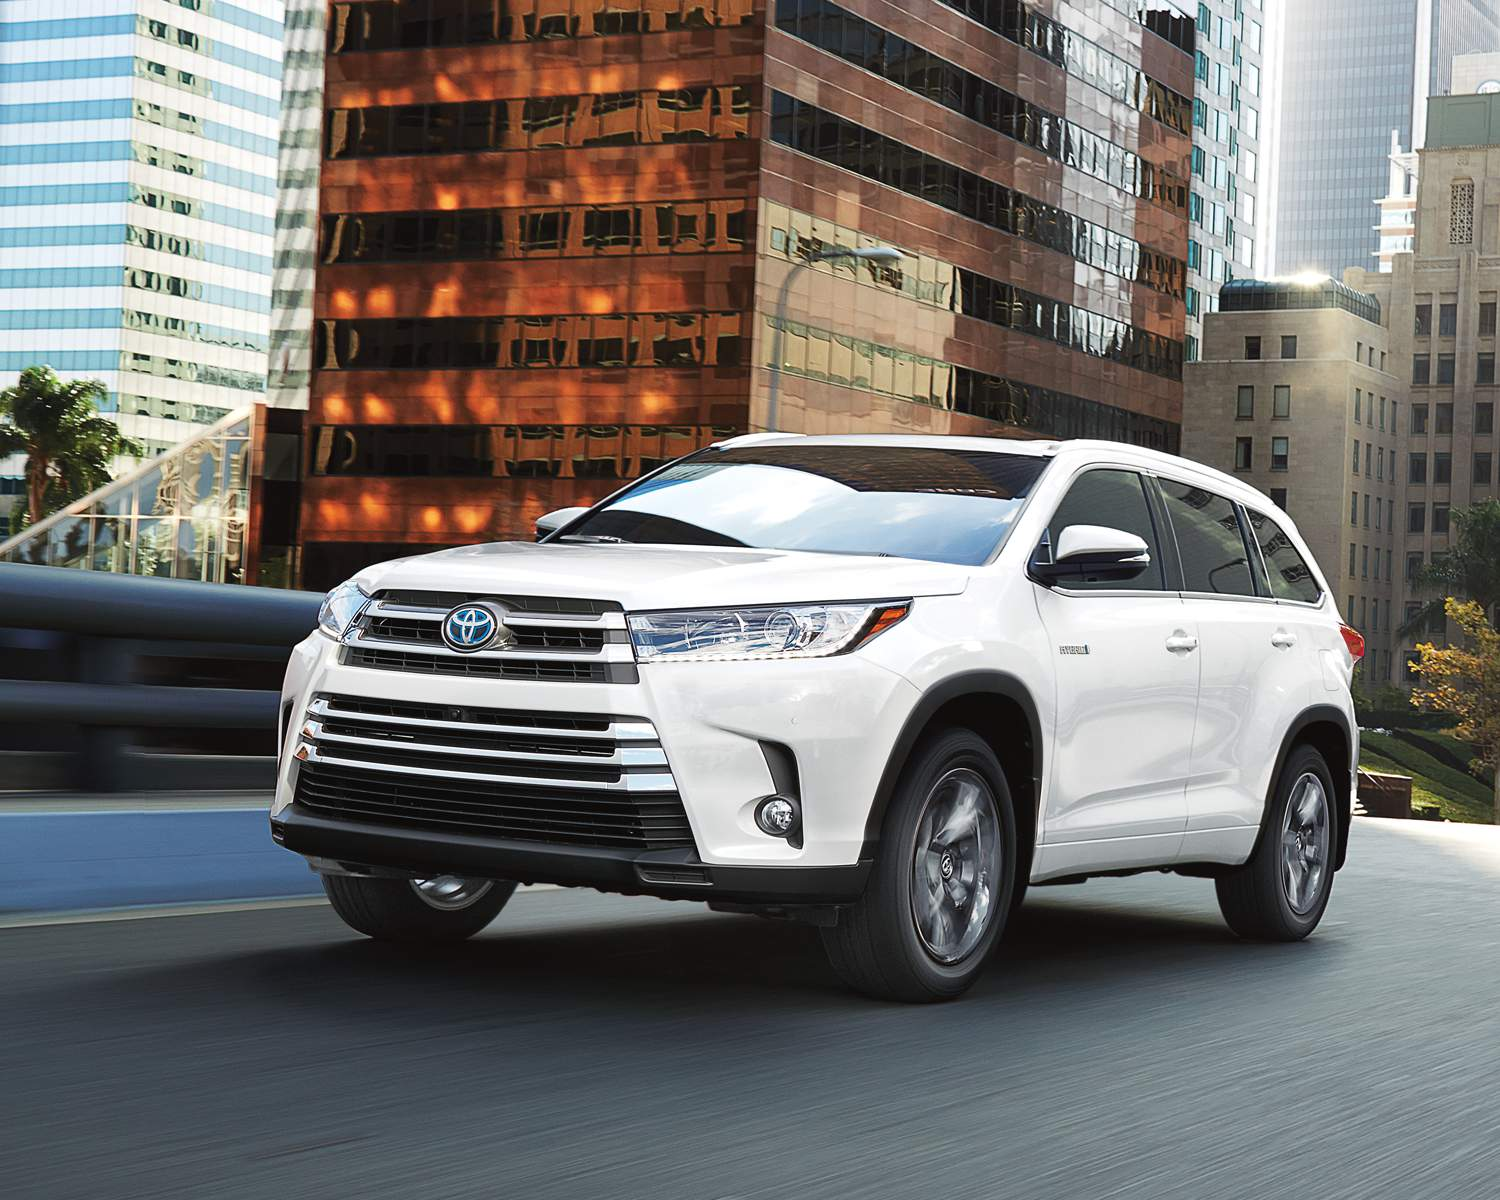 Why will the 2018 Toyota Highlander provide the best value for your money?